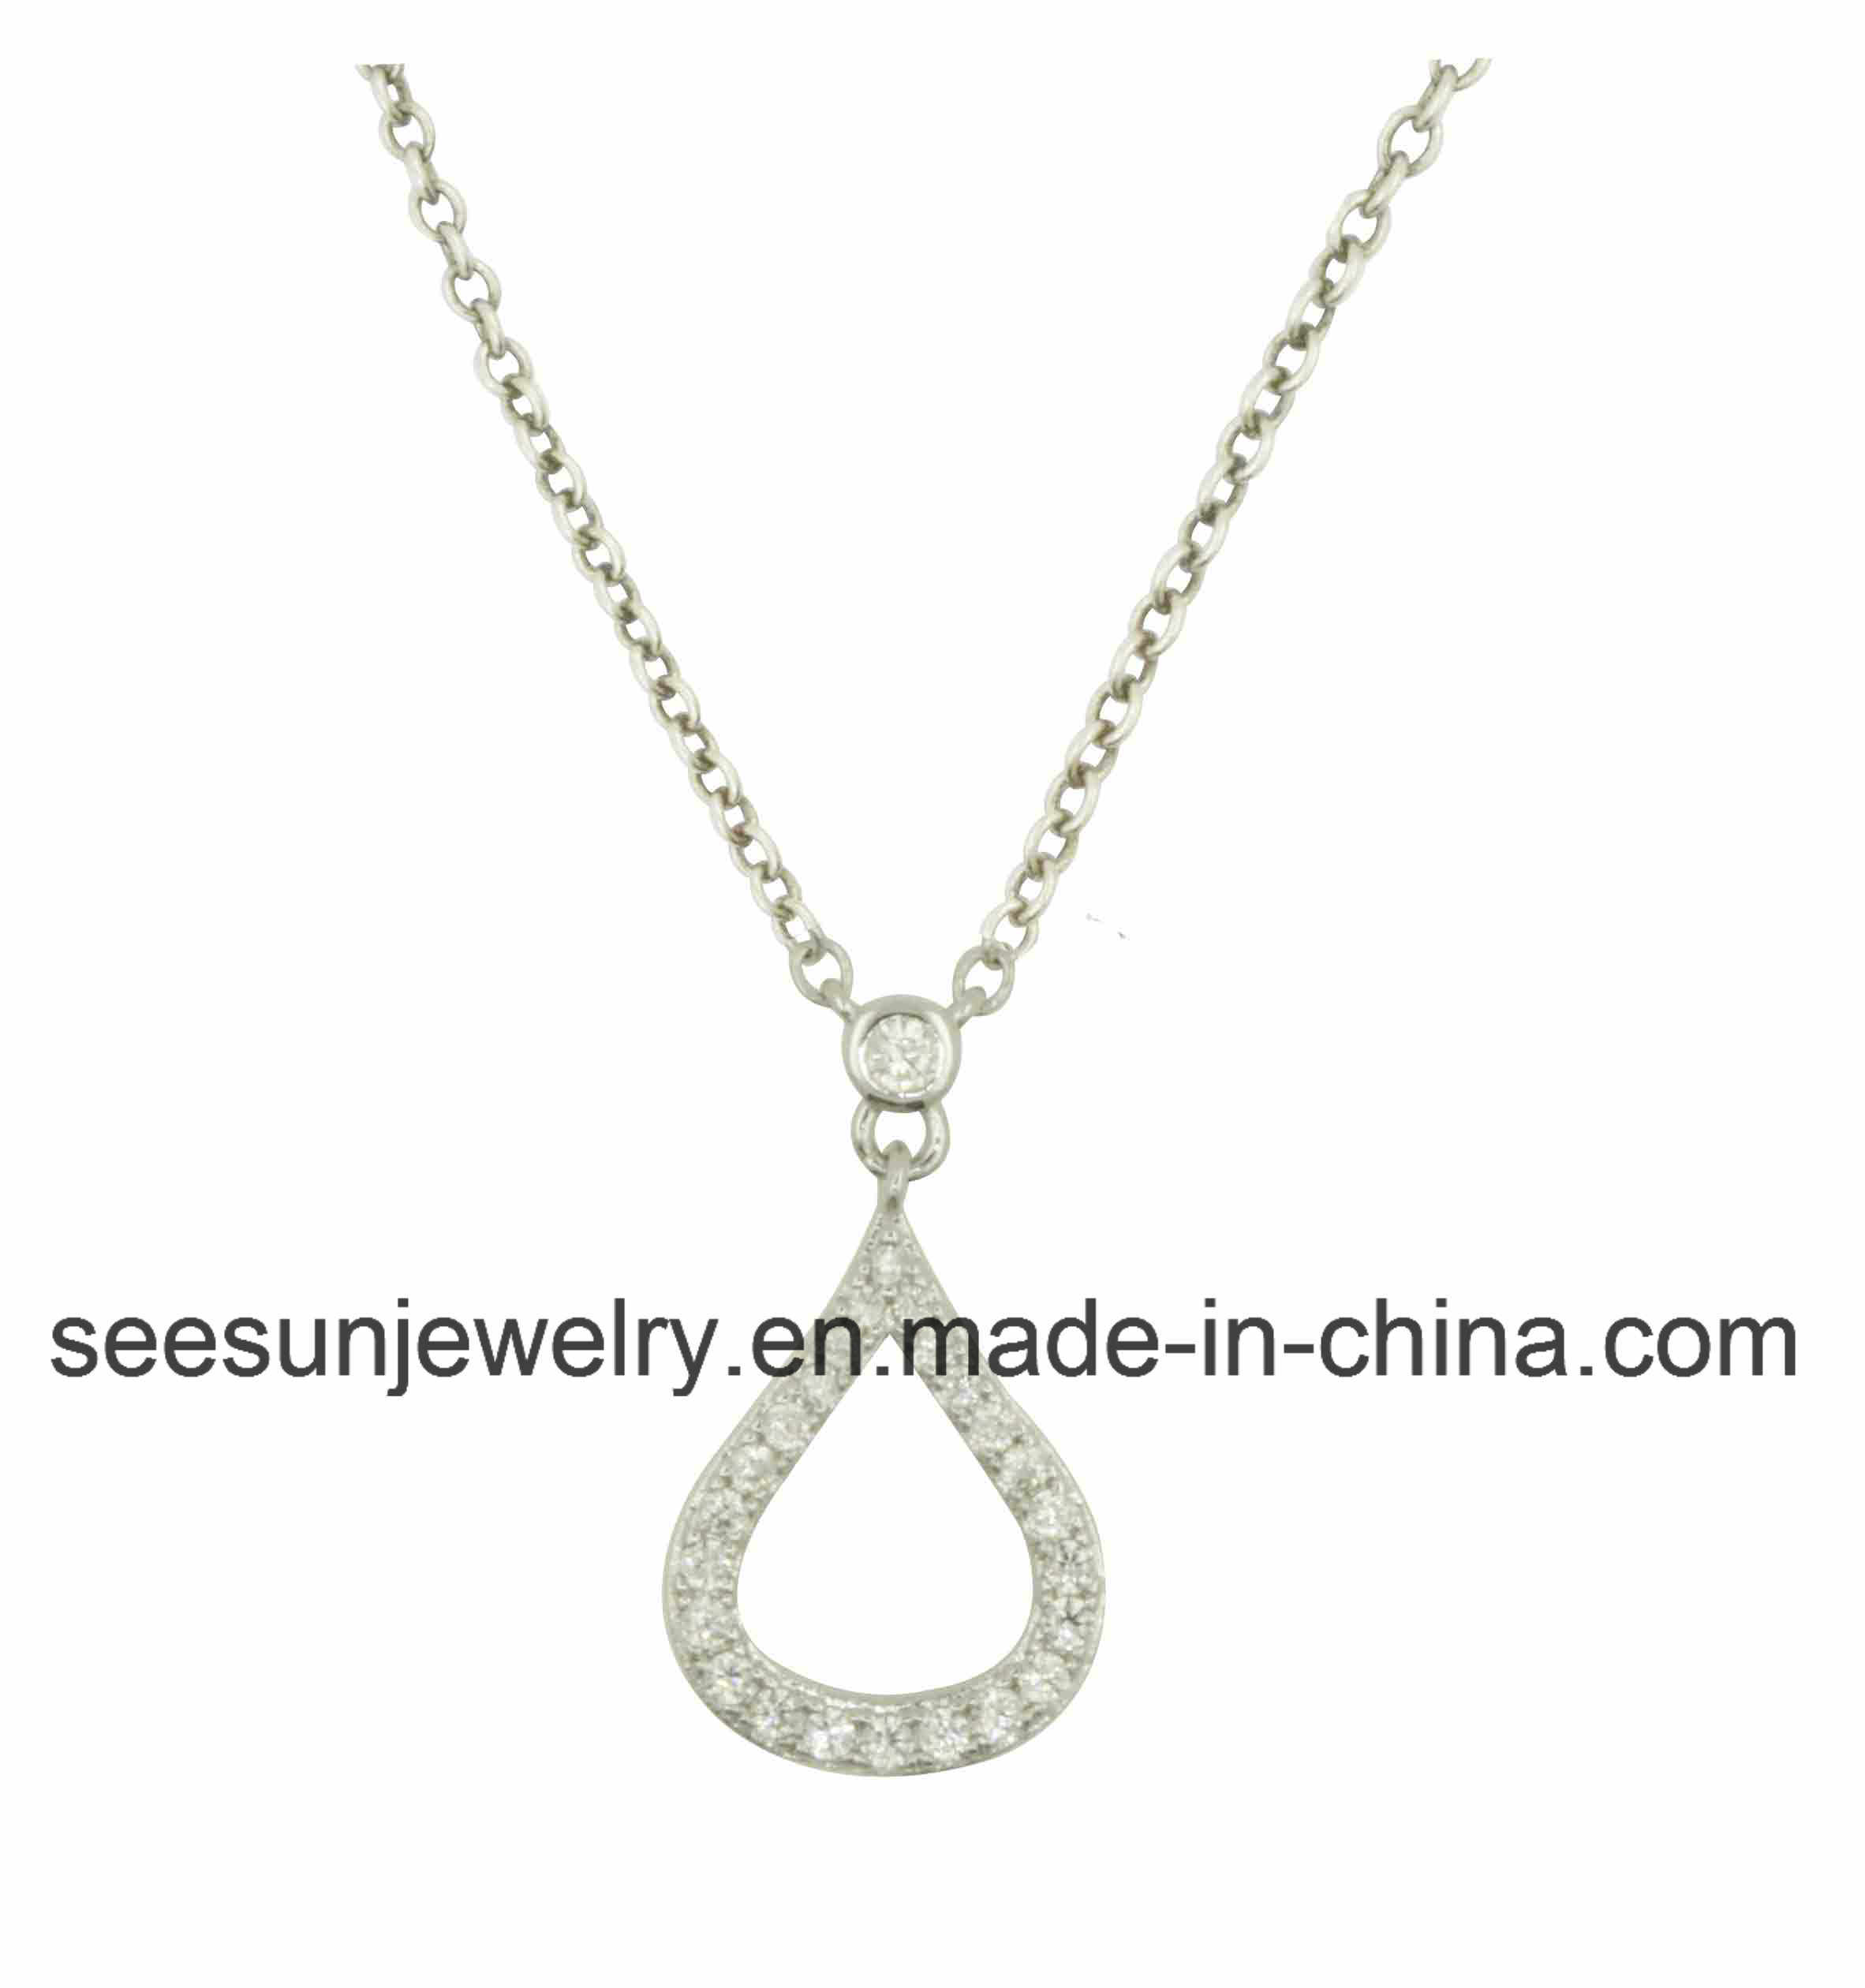 2016 Trendy Fashion Silver Jewelry Necklace for Women